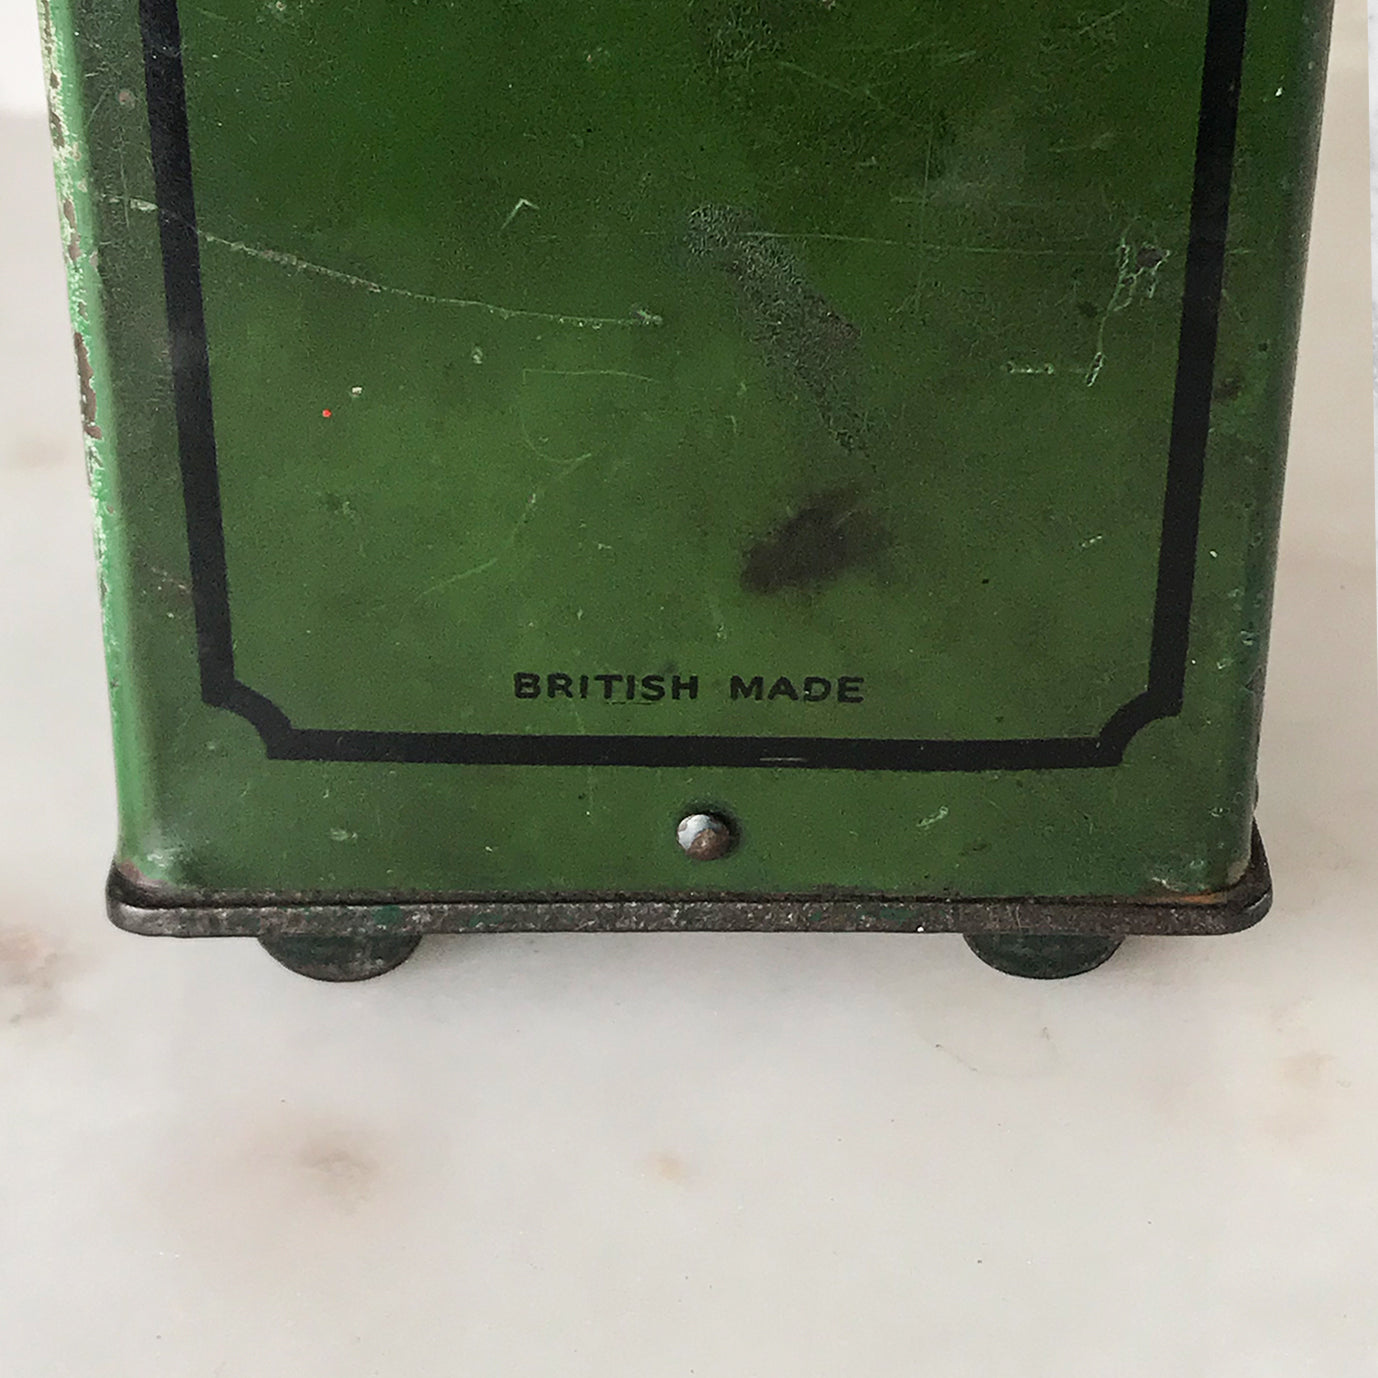 Gorgeous little Vintage Tin Safe Money Box with a fantastic aged patina - SHOP NOW - www.intovintage.co.uk